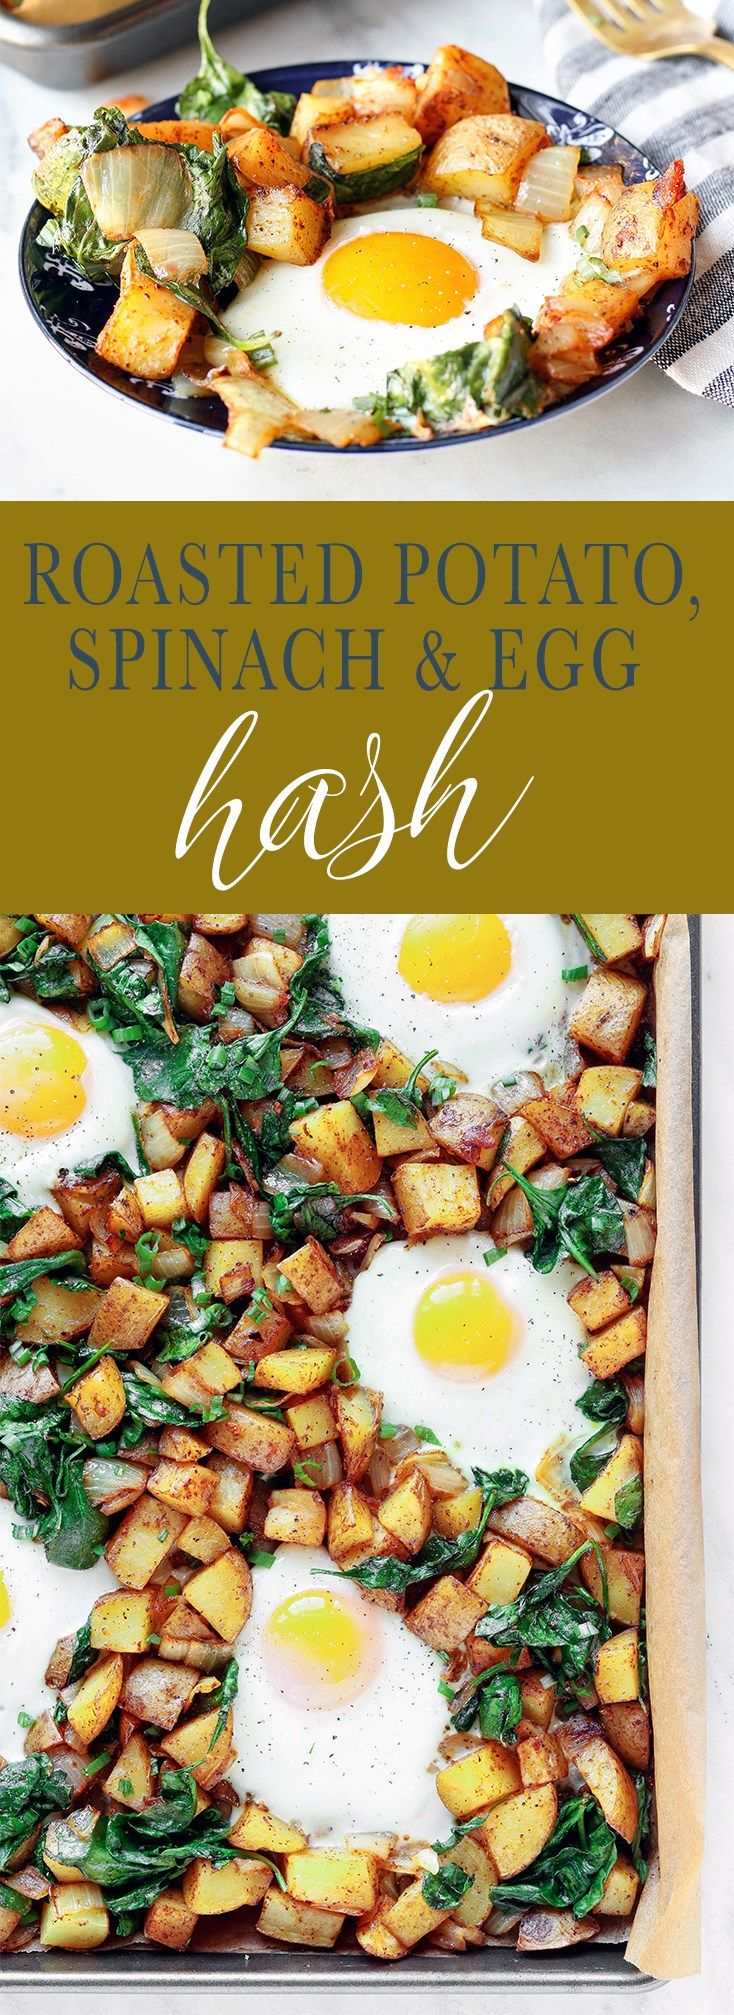 Roasted Potato, Spinach and Egg Breakfast Hash